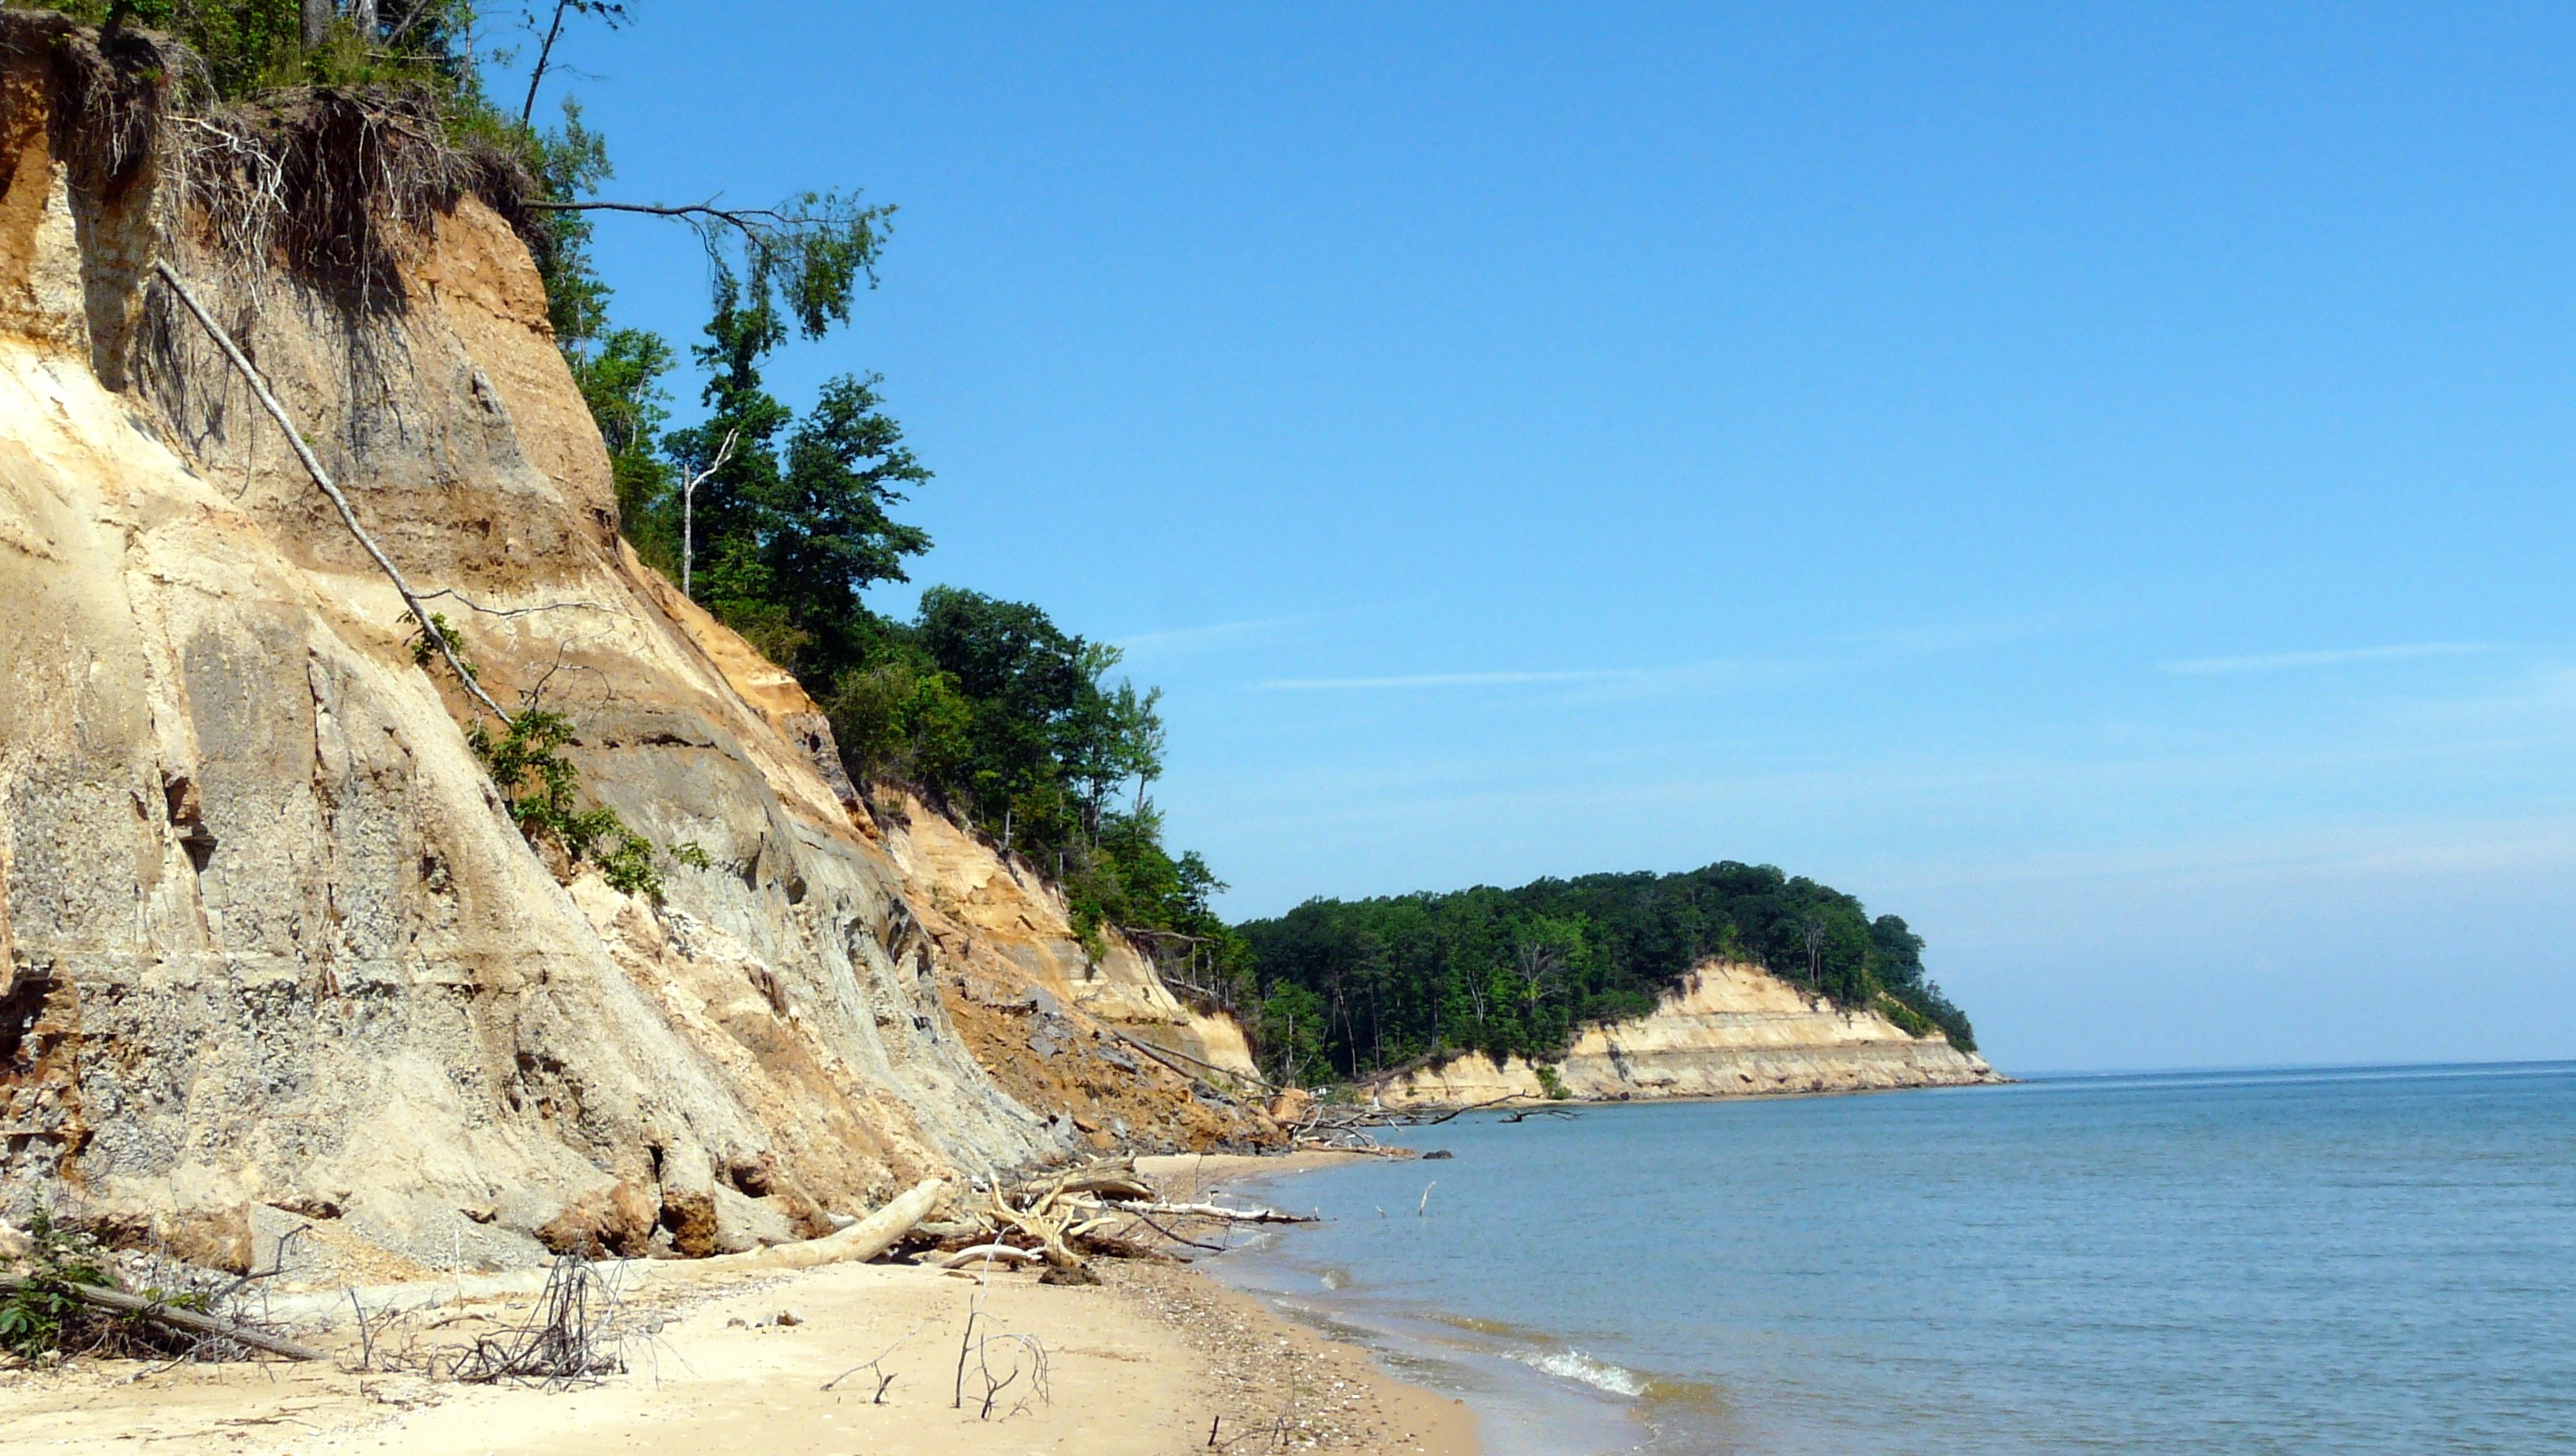 calvert cliffs beach in maryland is one of the most unique in the world